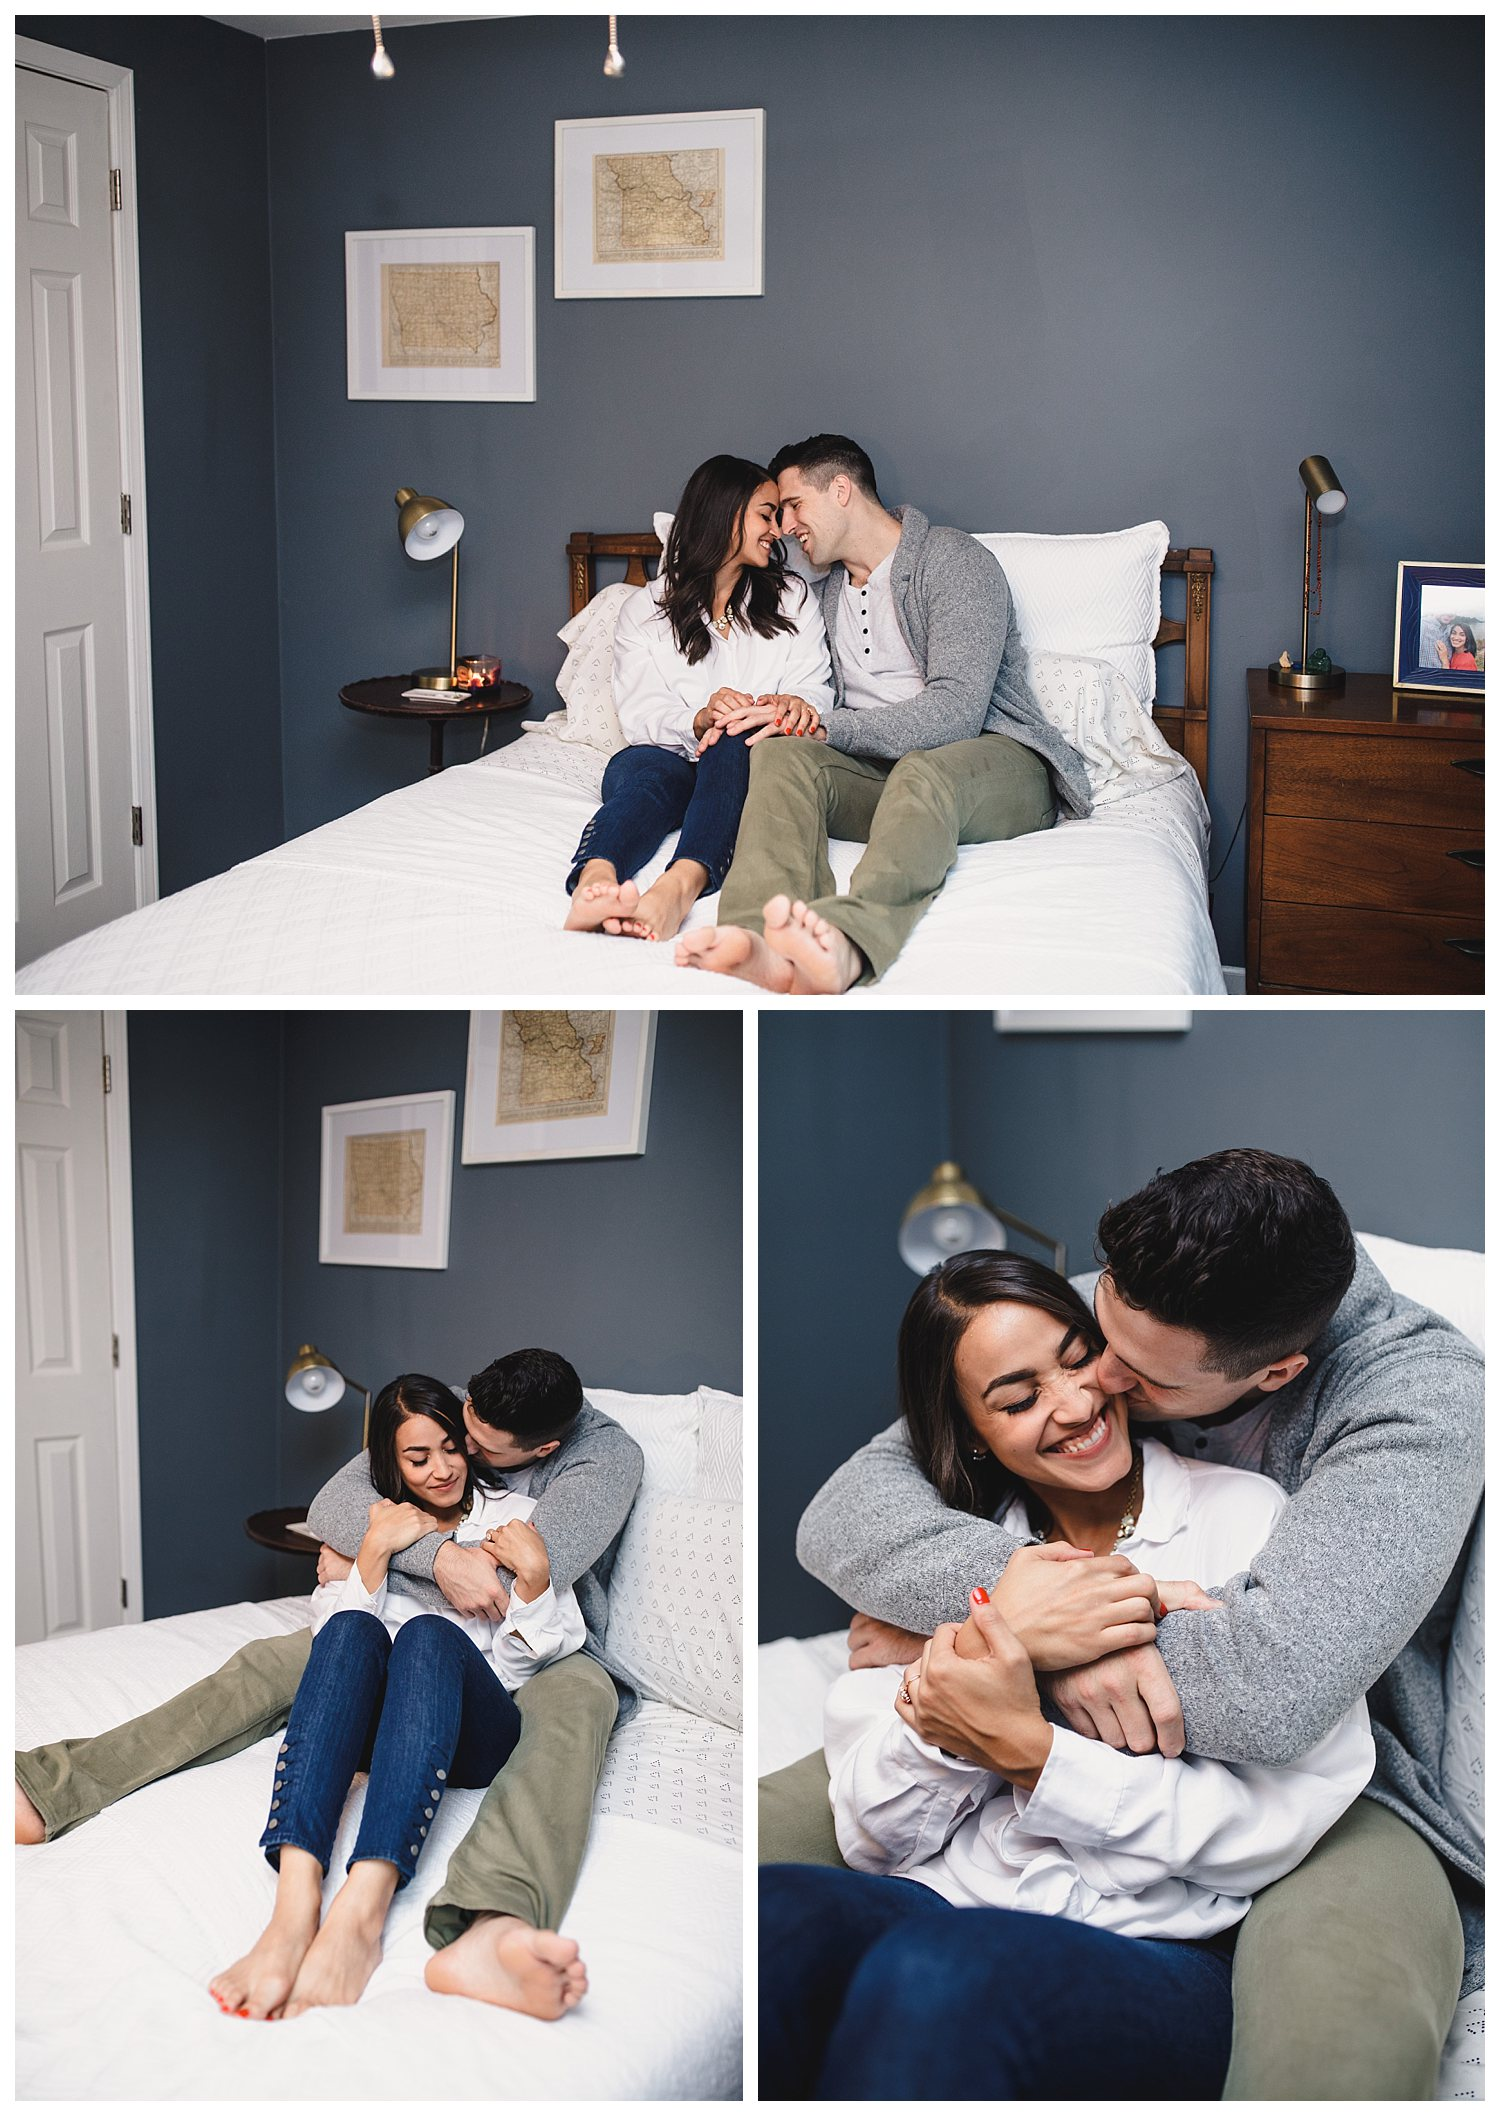 Kansas_City_Wedding_Photographer_Engagement_Kelsey_Diane_Photography_Midwest_Traveling_In_home_engagement_Session_Cassie_Austin_Parkville_Missouri_0881.jpg